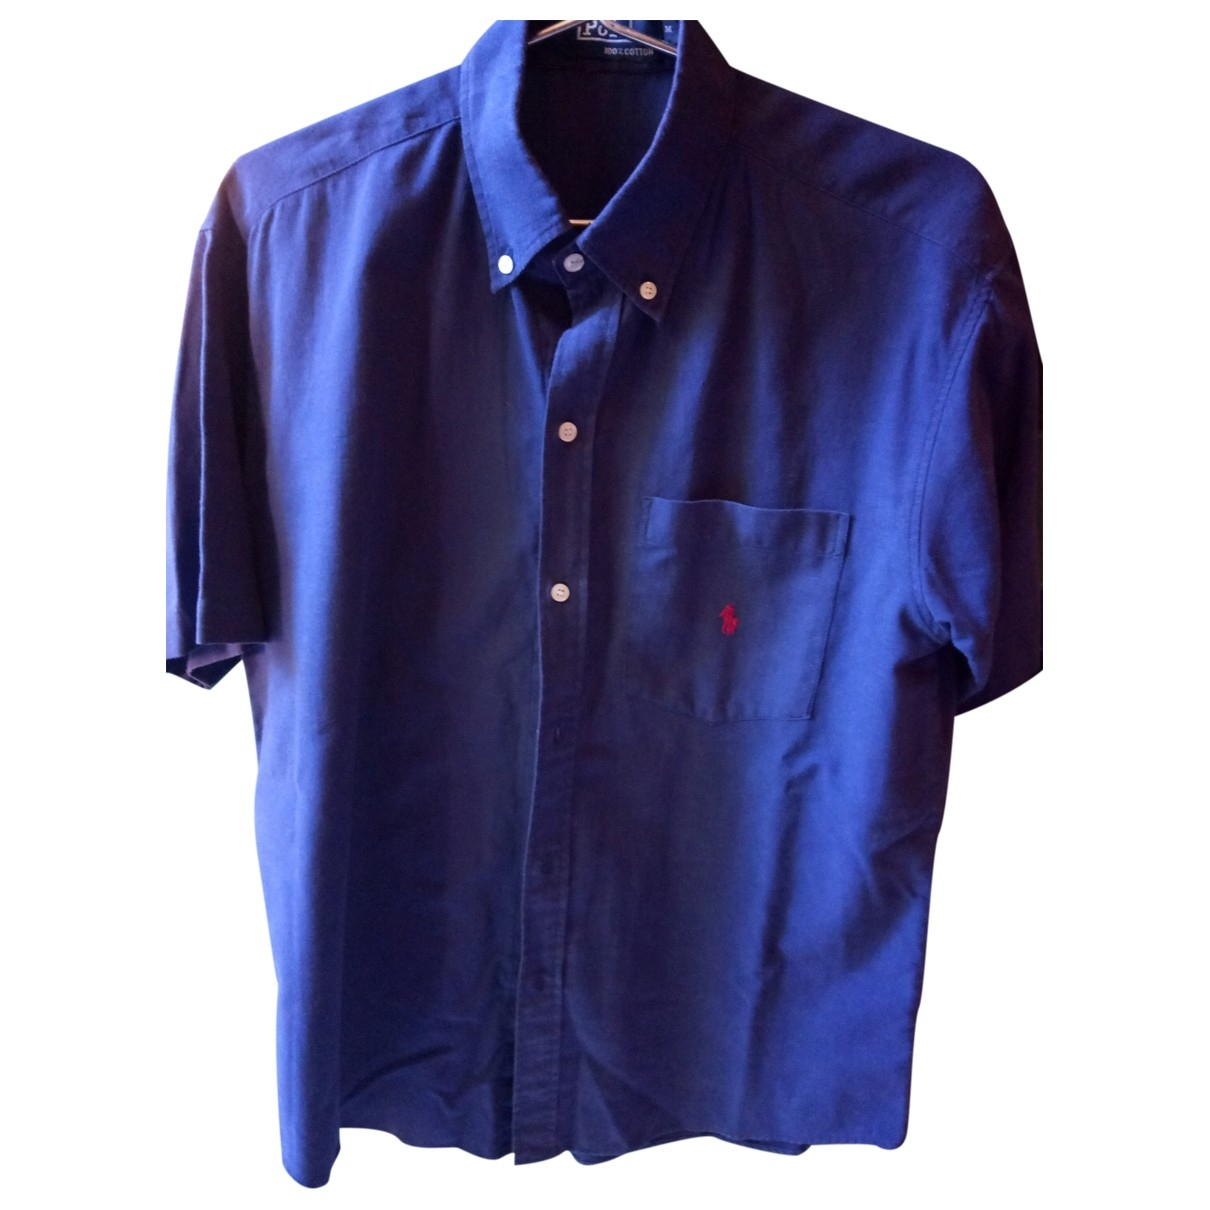 Polo Ralph Lauren Polo ajusté manches courtes Blue Cotton Shirts for Men M International